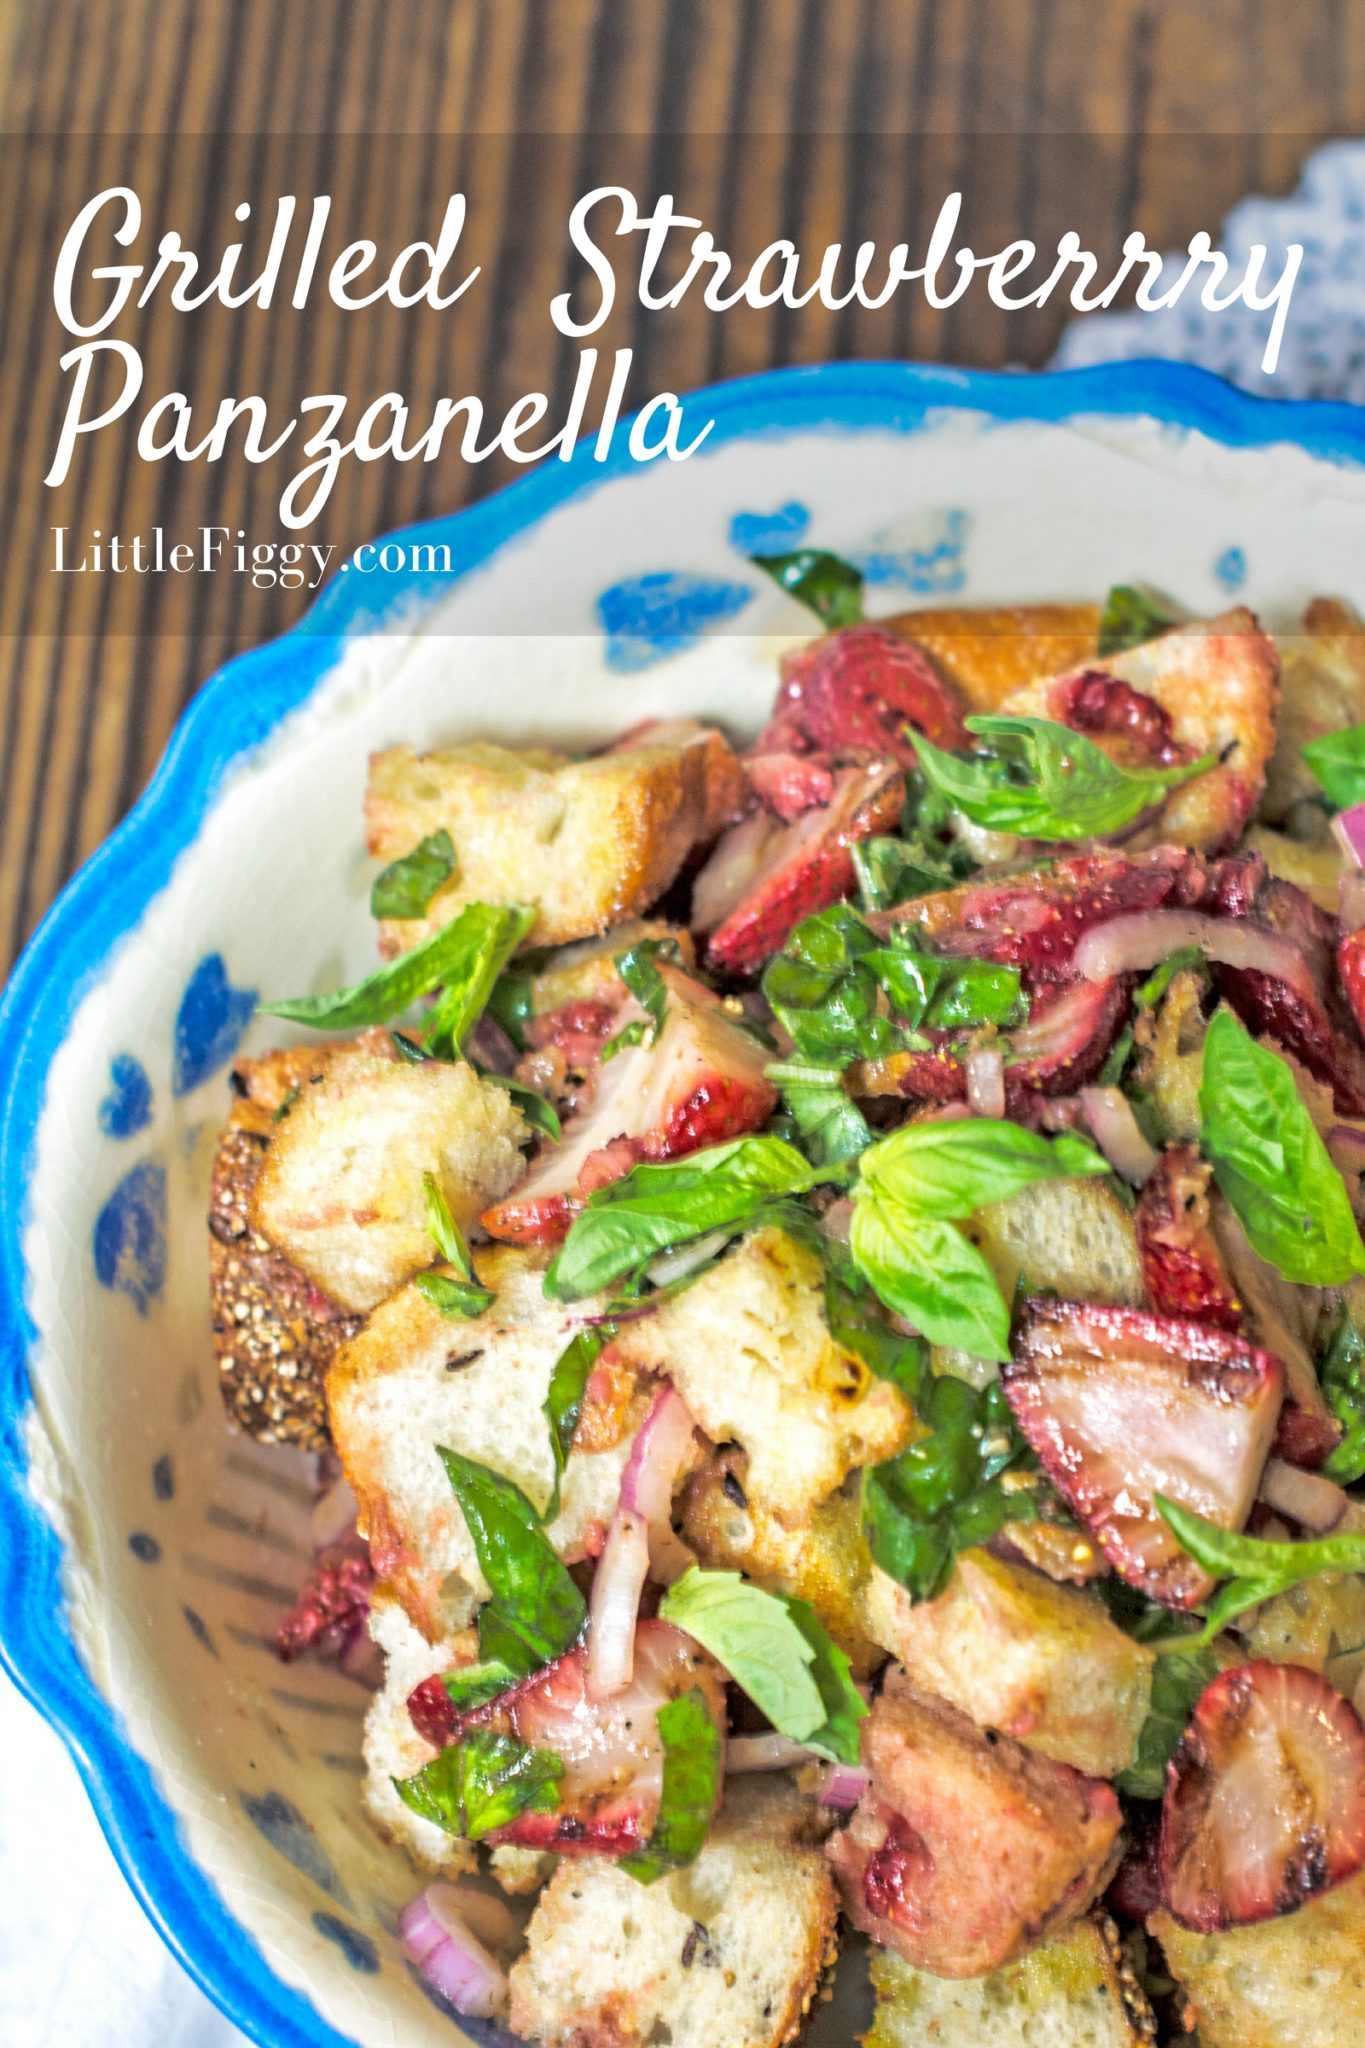 Easy to make and perfect to celebrate warm weather, Grilled Strawberry Panzanella! @hamiltonbeach @Amazon #Grillit #sponsored